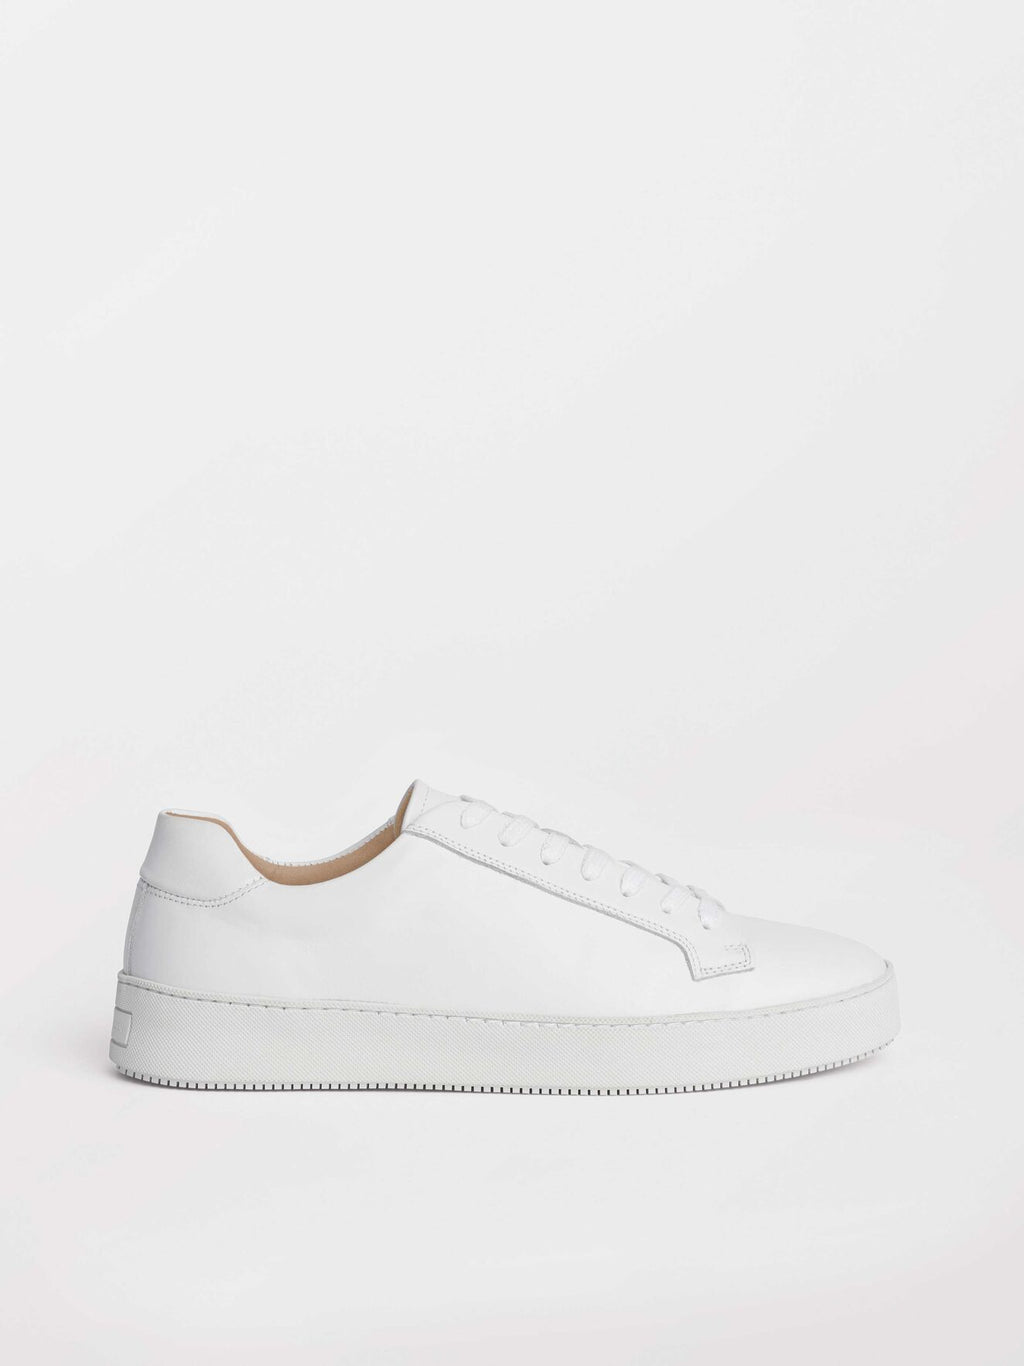 salas sneakers white u65410011z Tiger of Sweden